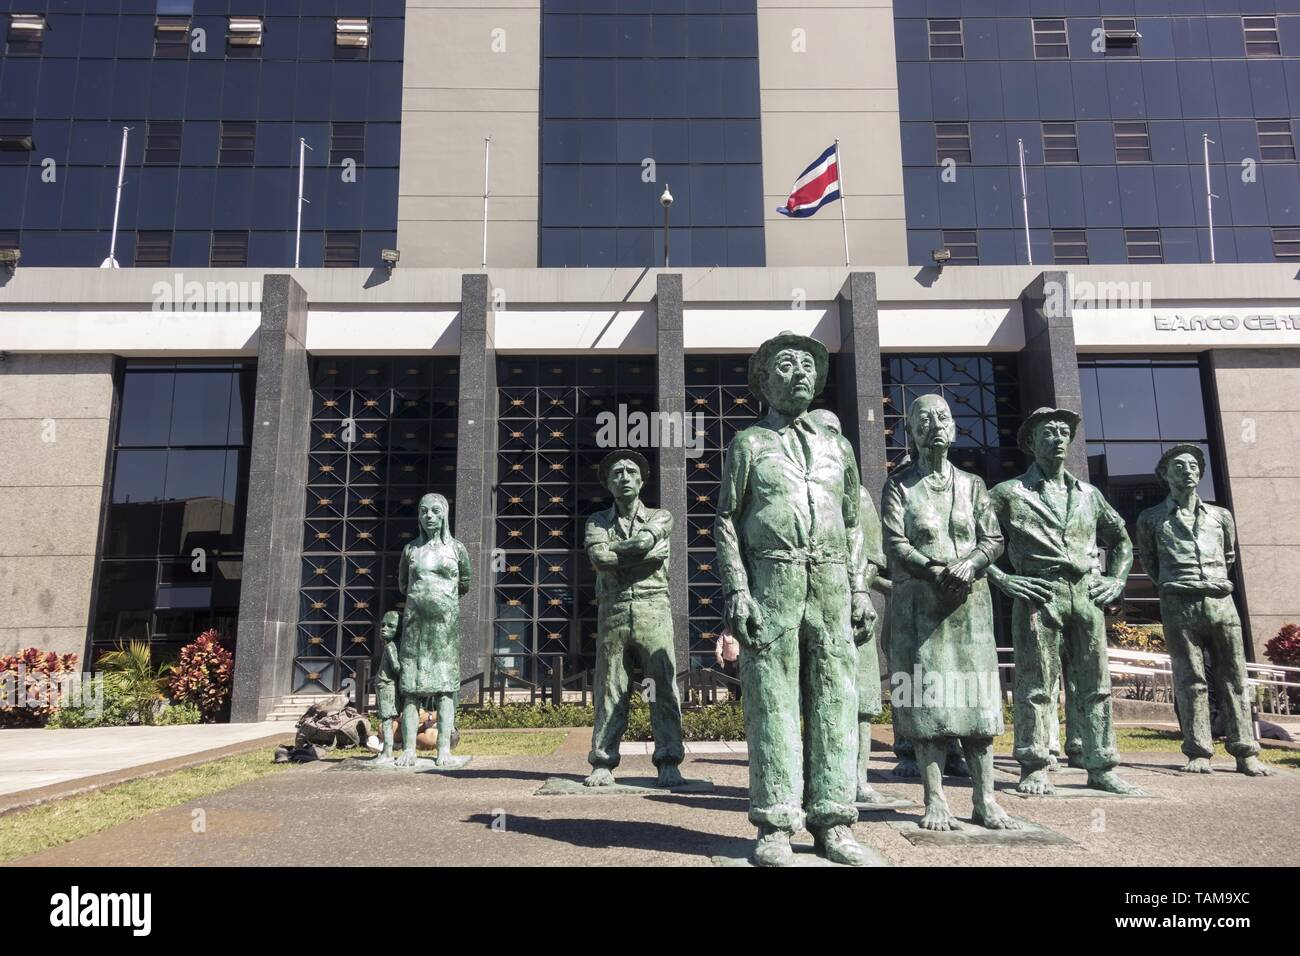 Art Exhibit of Los Presentes Peasant Farmers Sculptures in front of City Center Central Bank Building, San Jose Costa Rica Stock Photo